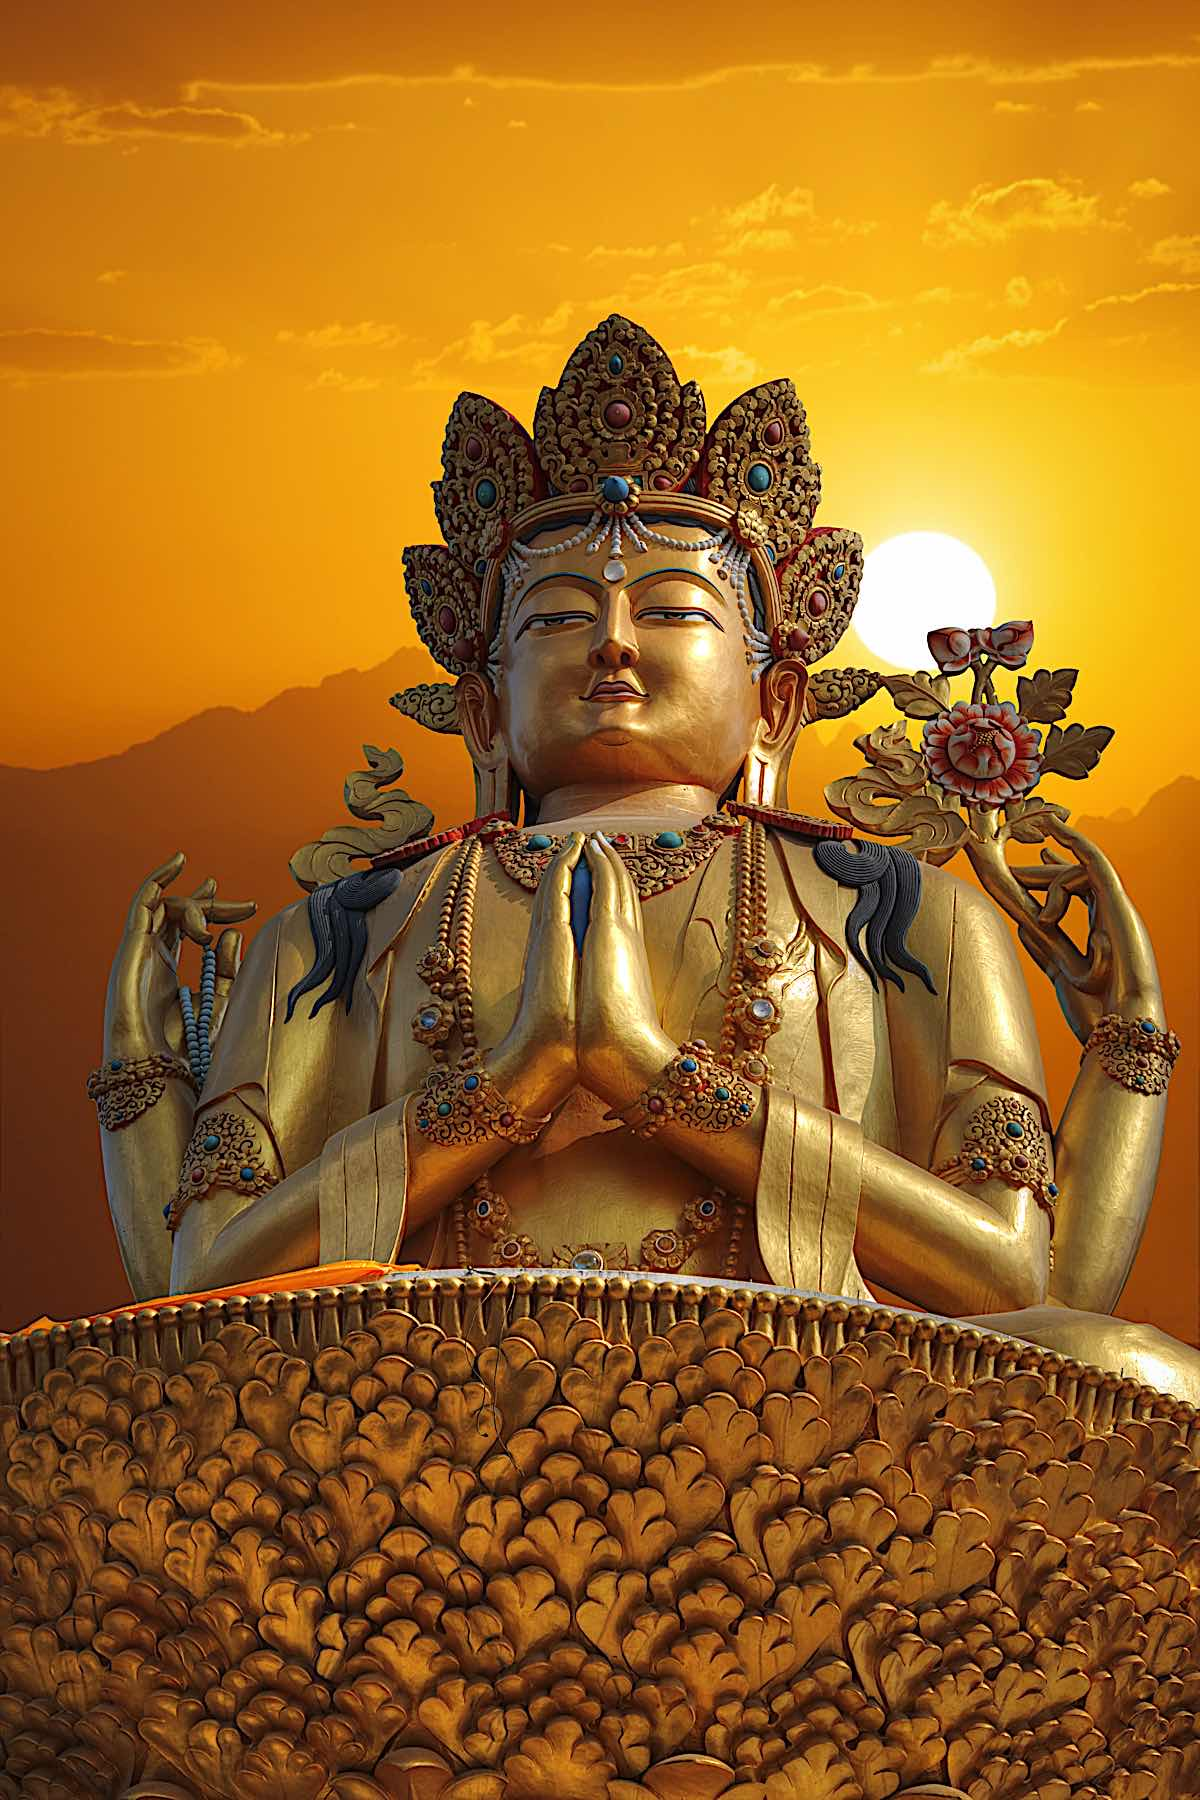 Buddha Weekly Cour Armed Chenrezig Statue stands in Kathmandu Nepal with sunset dreamstime xxl 87955847 Buddhism